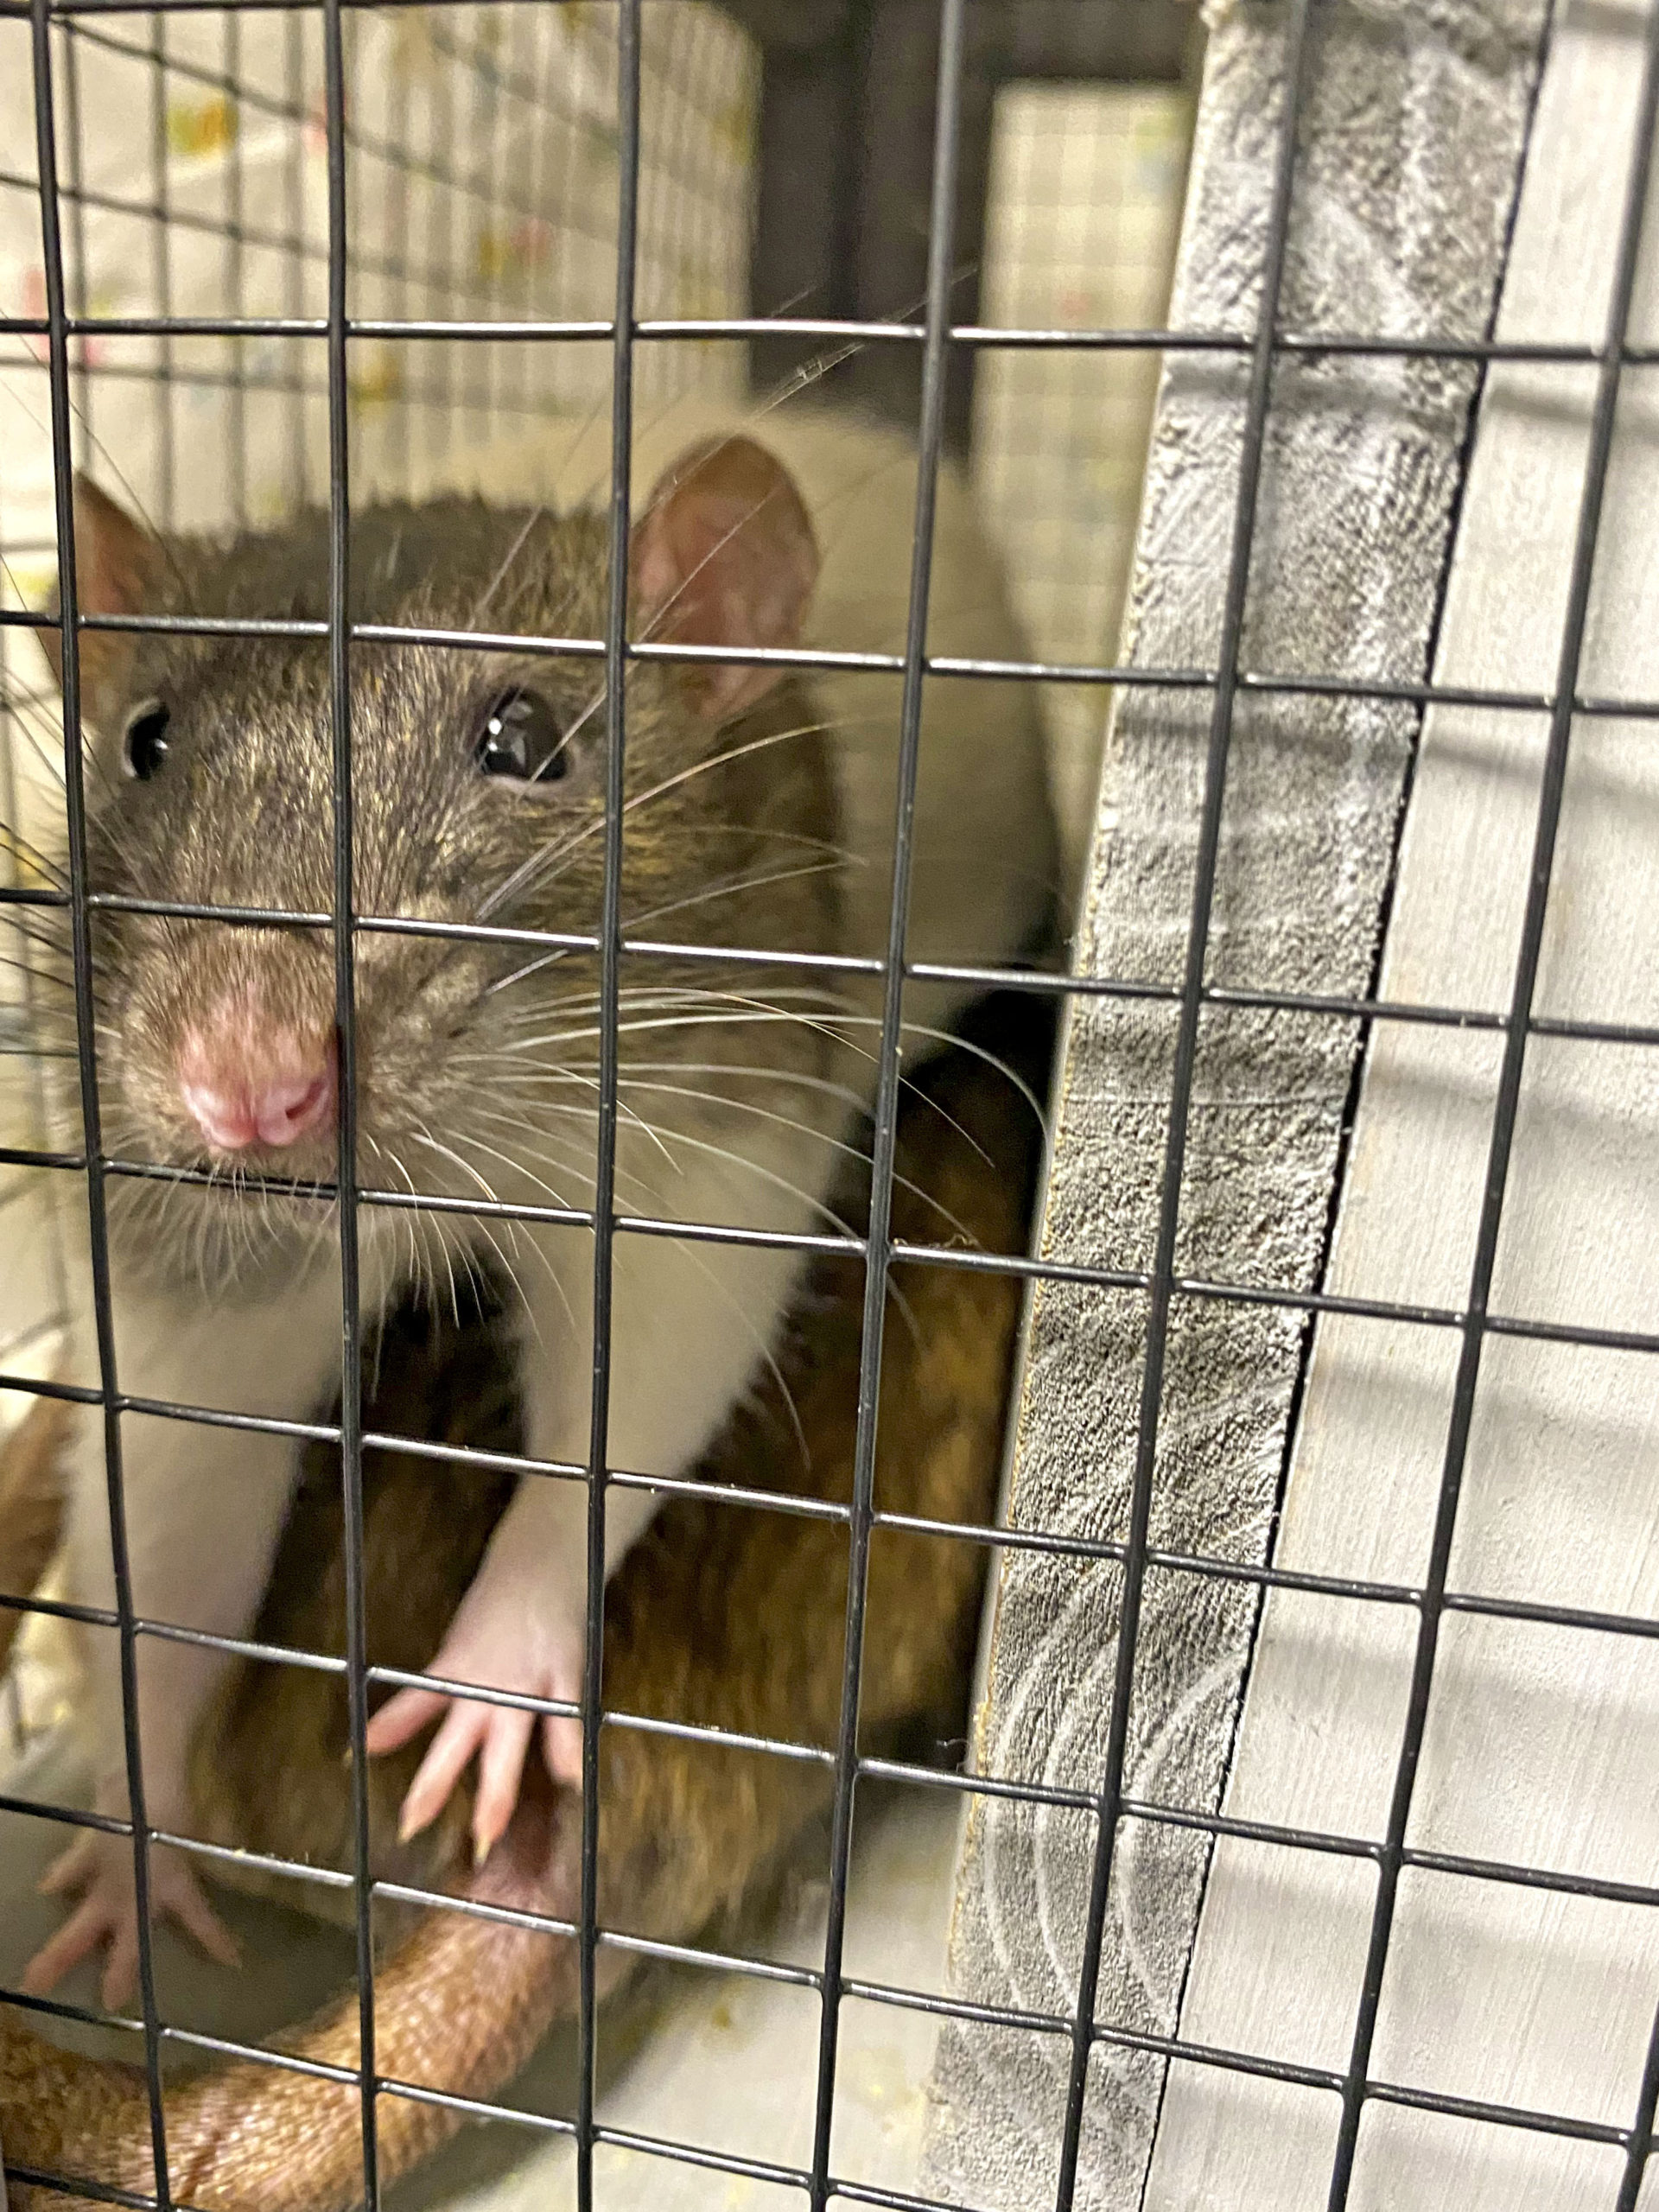 The Southampton Animal Shelter has many other small animals that have been surrendered like rats and Guinea pigs.    DANA SHAW